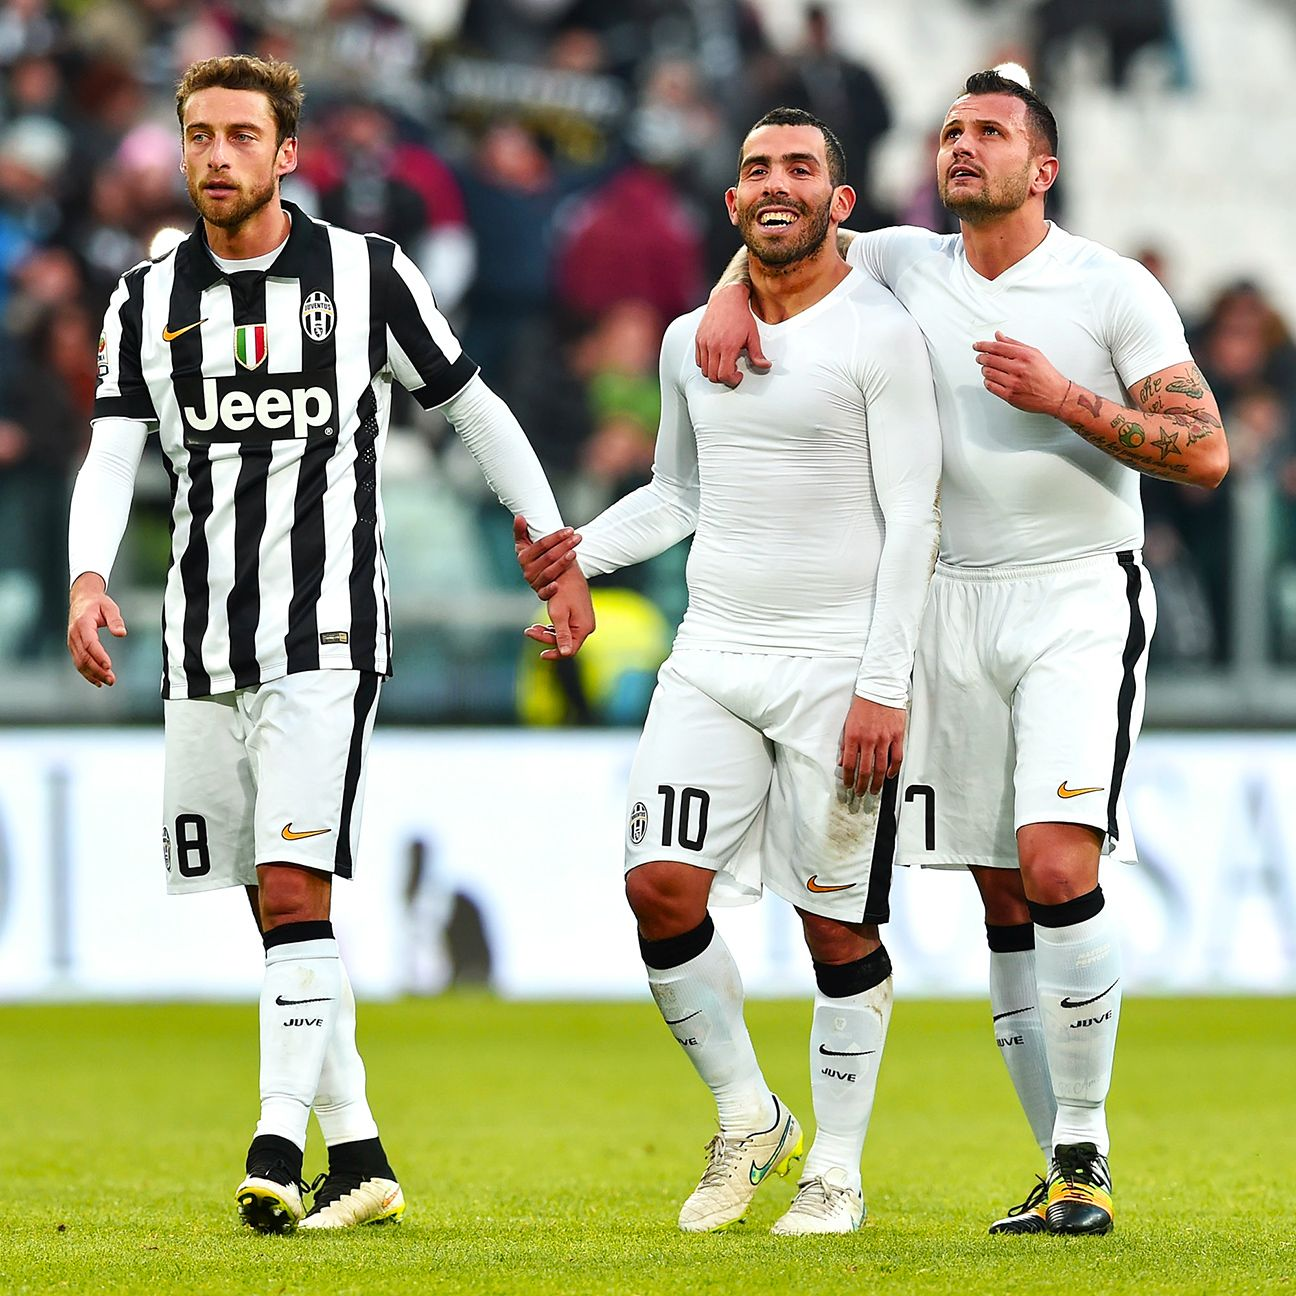 Juventus can heap further pressure on second-place Roma with a win over Udinese.